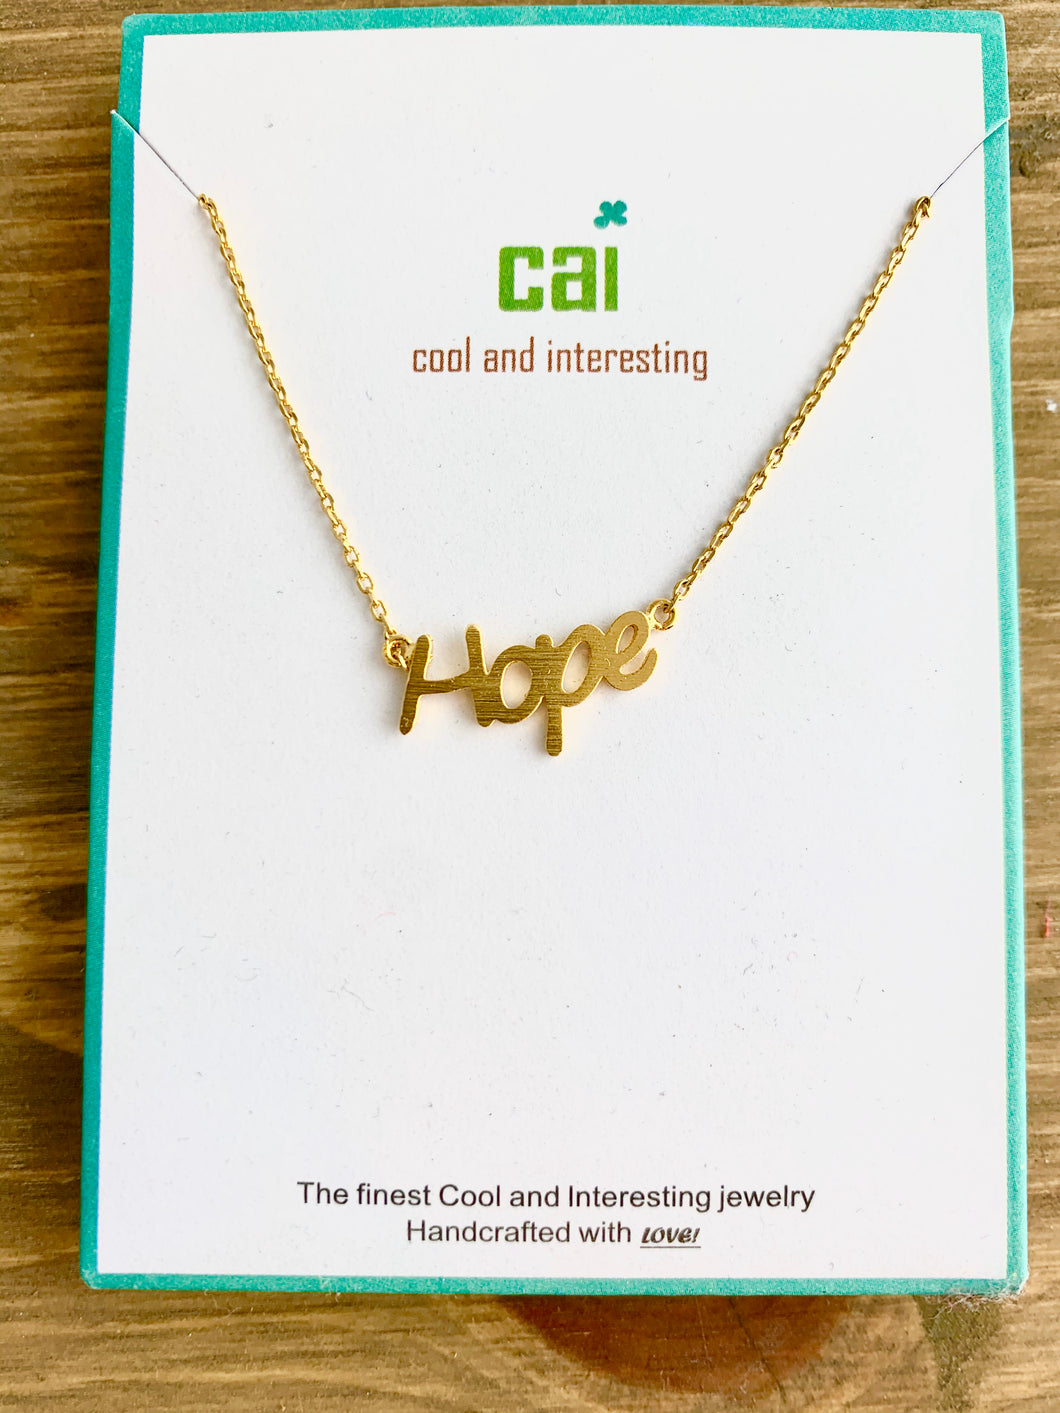 CAI Hope Necklace- Gold